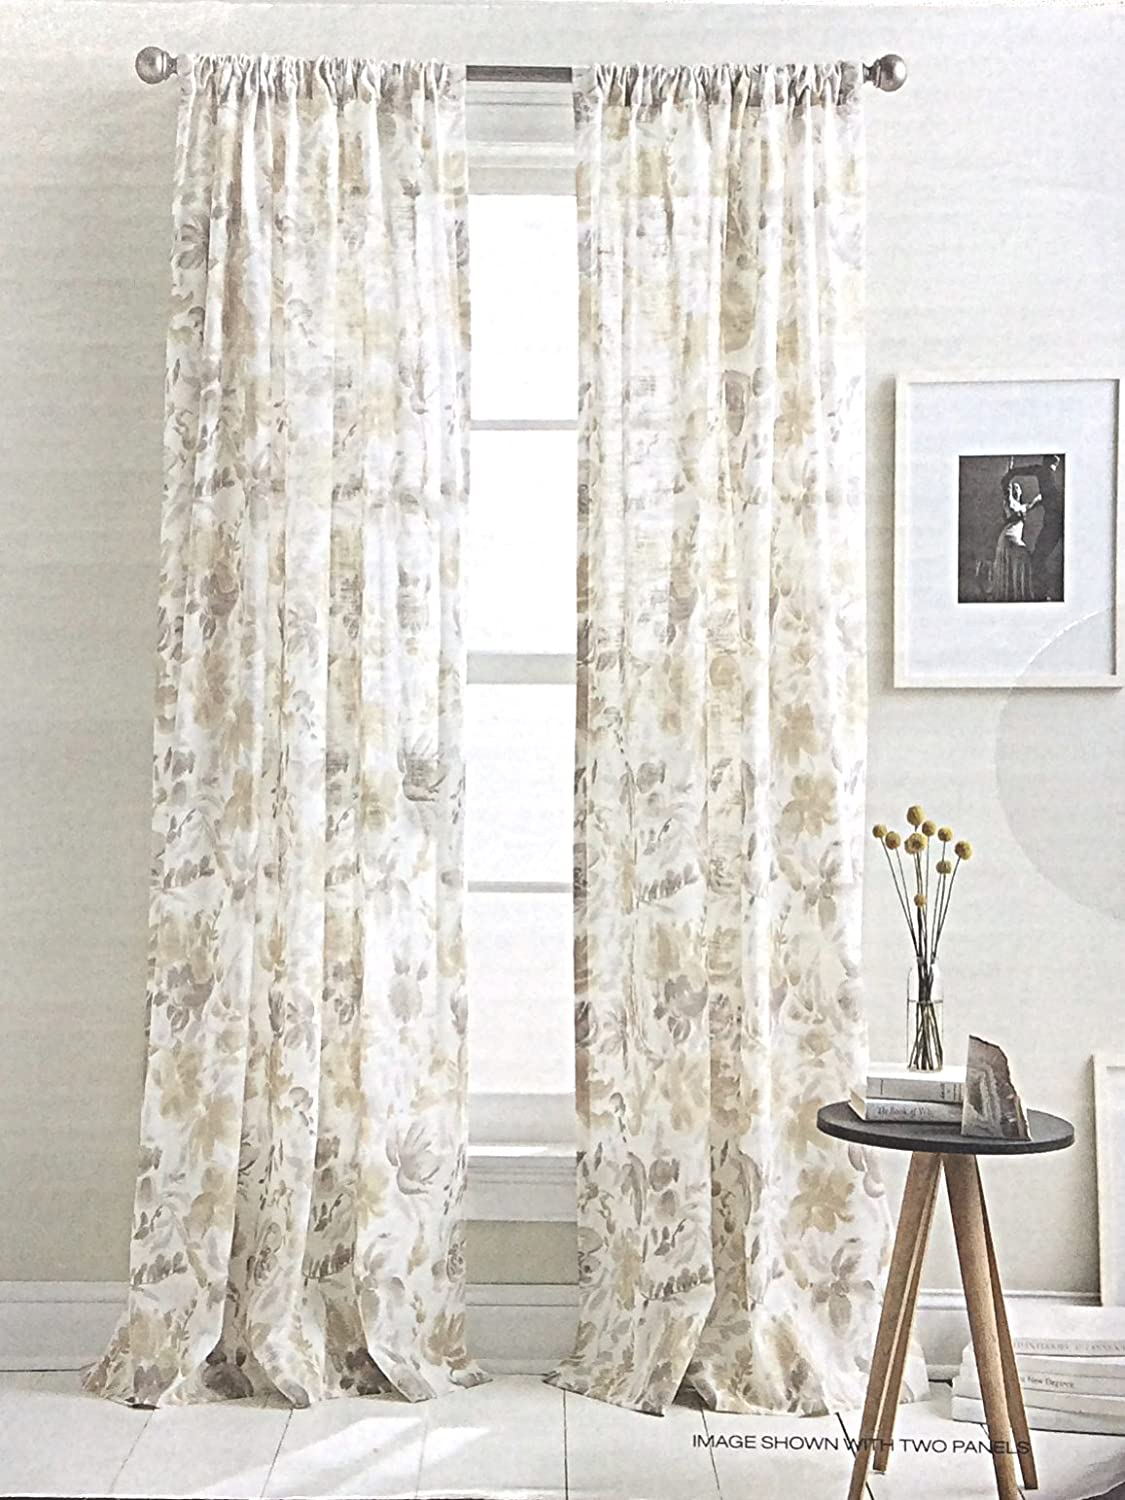 Com Dkny Watercolor Bouquet Fl Road Pocket Curtains 100 Cotton 2 Panels 50 By 96 Inch Set Of Window White Beige Tan Taupe